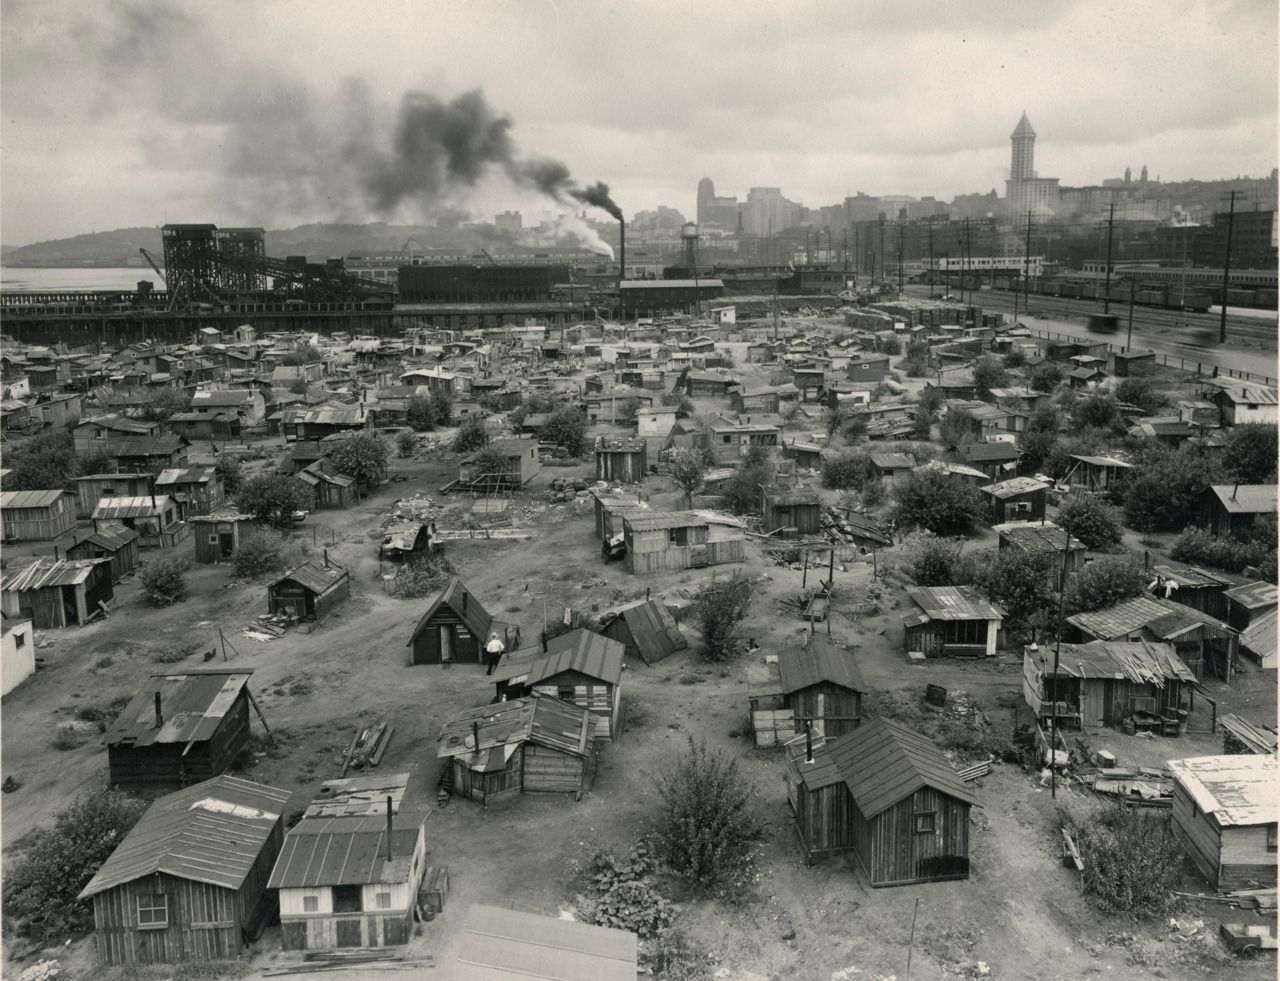 best images about great depression stan lee seattle s hooverville squatter settlements the great depression 1930 unidentified photographer 1930